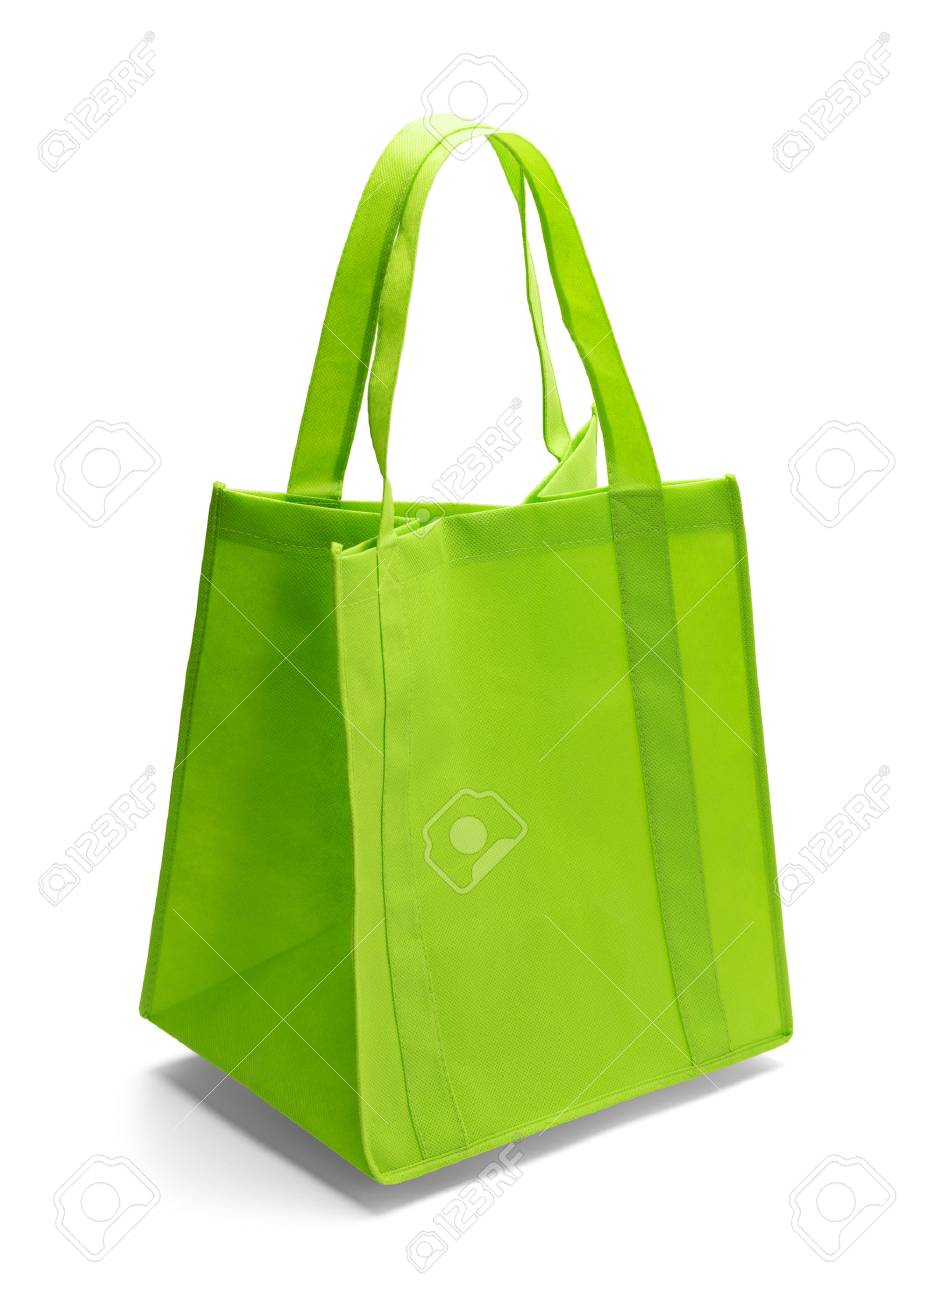 Green Fabric Shopping Bag Isolated On A White Background Stock Photo Picture And Royalty Free Image Image 51202564